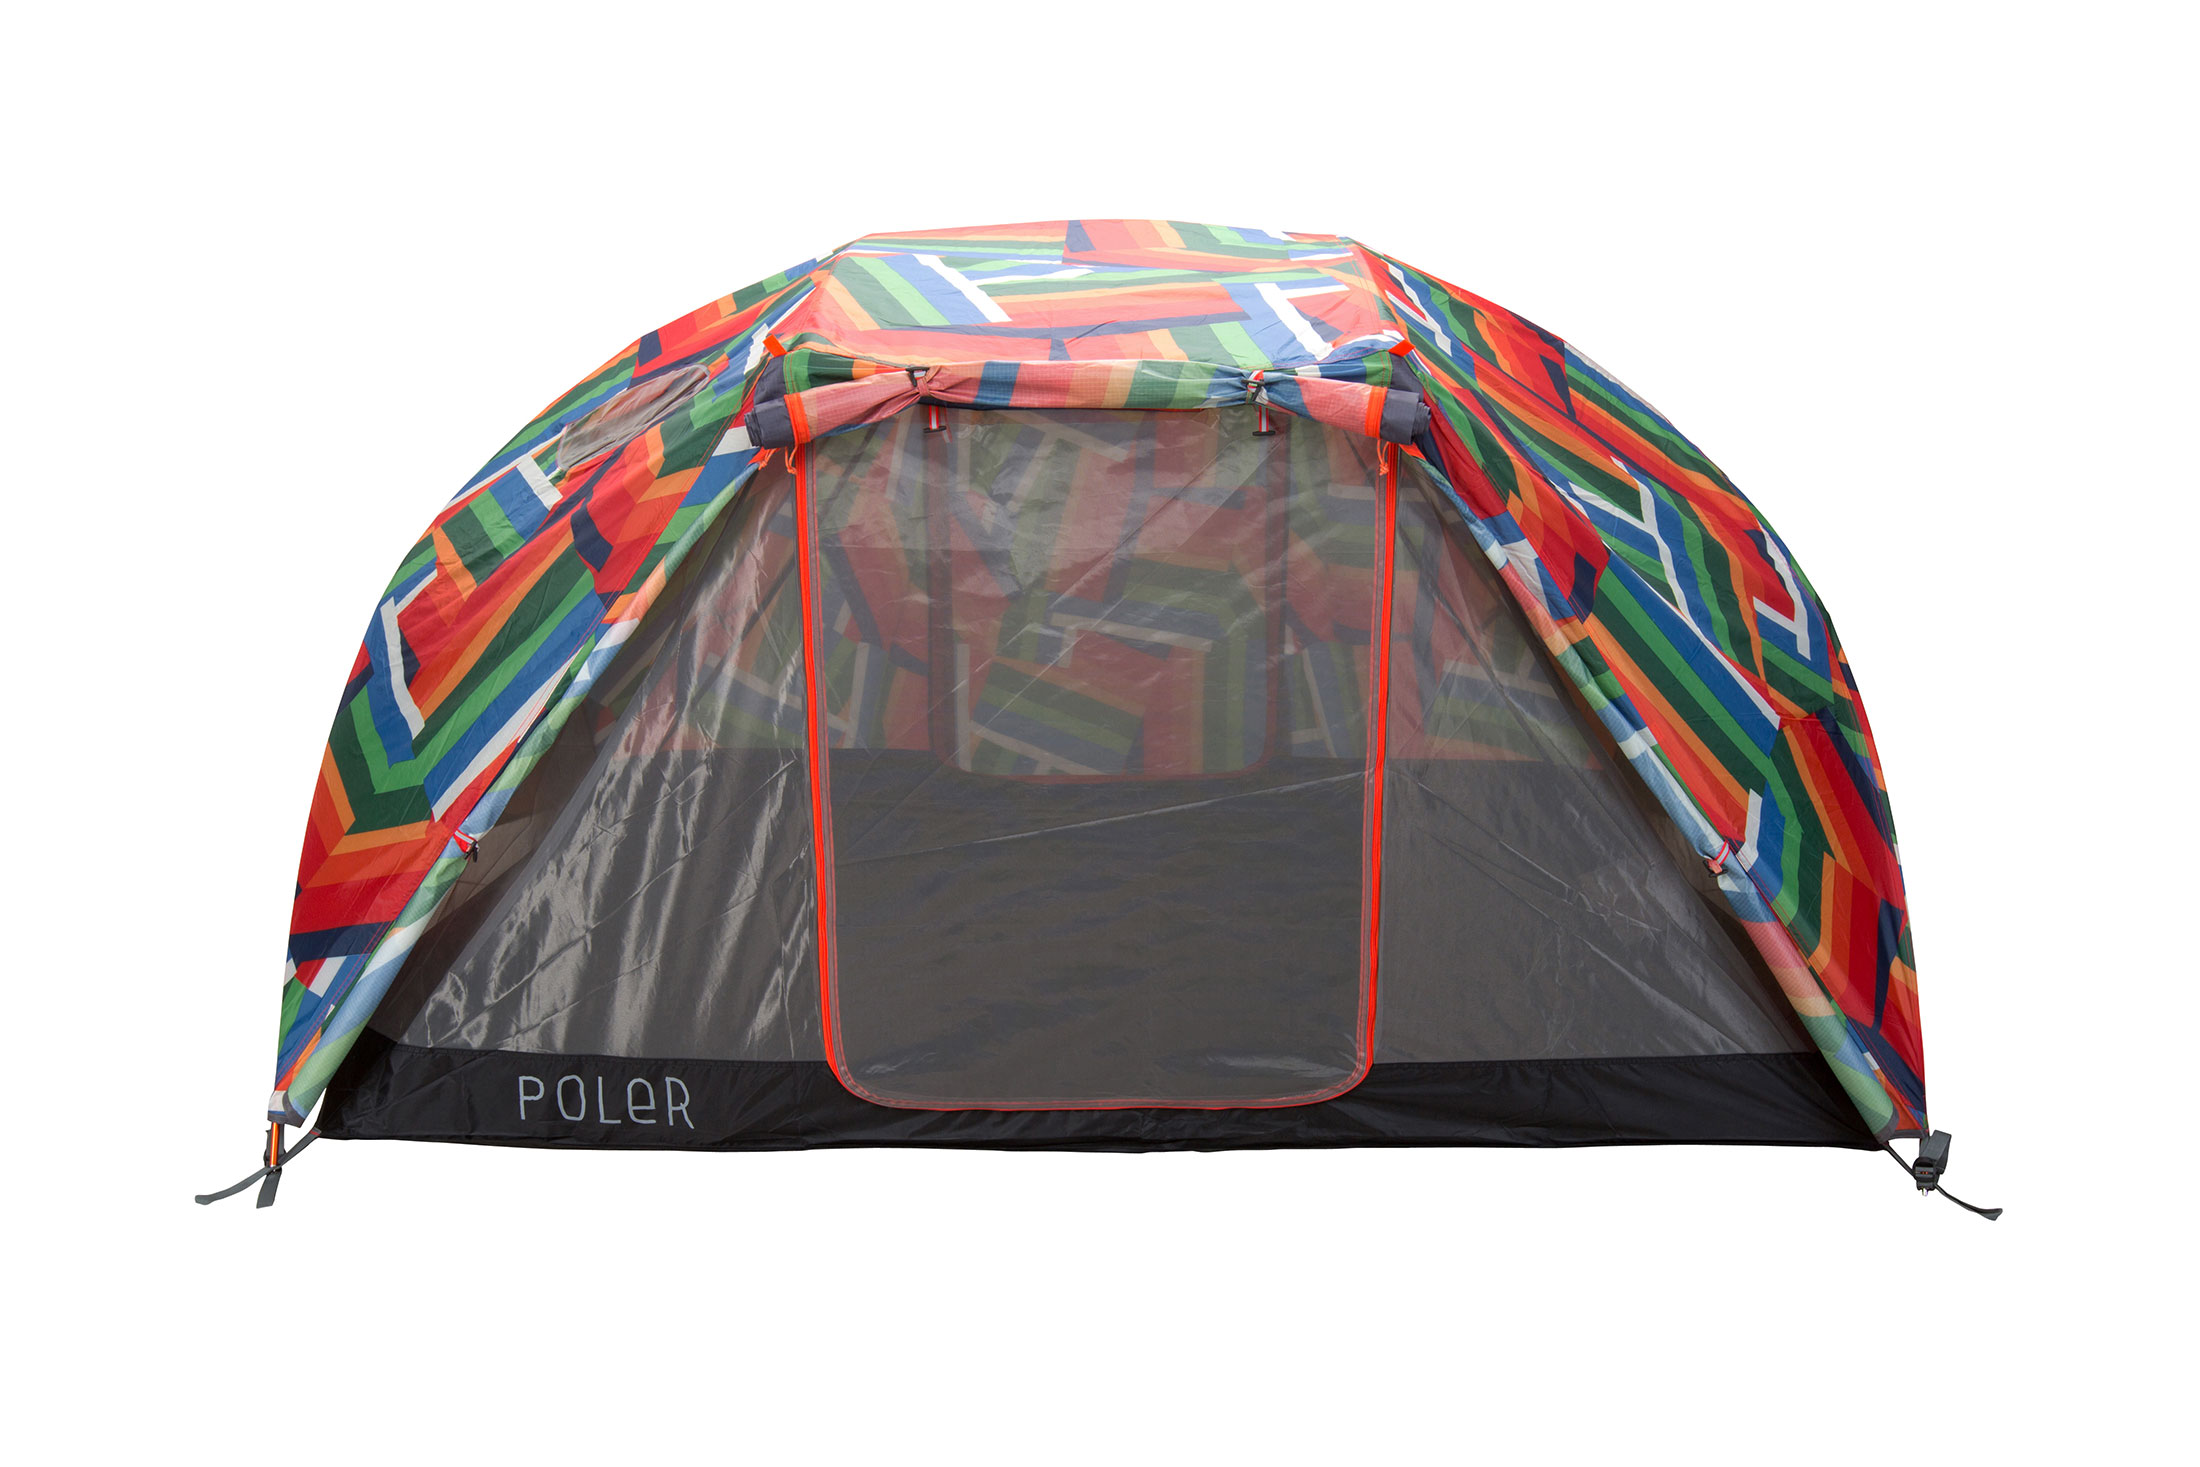 Poler x Pendleton 2016 Fall/Winter Collection camping essentials orange green red blue - 1762252